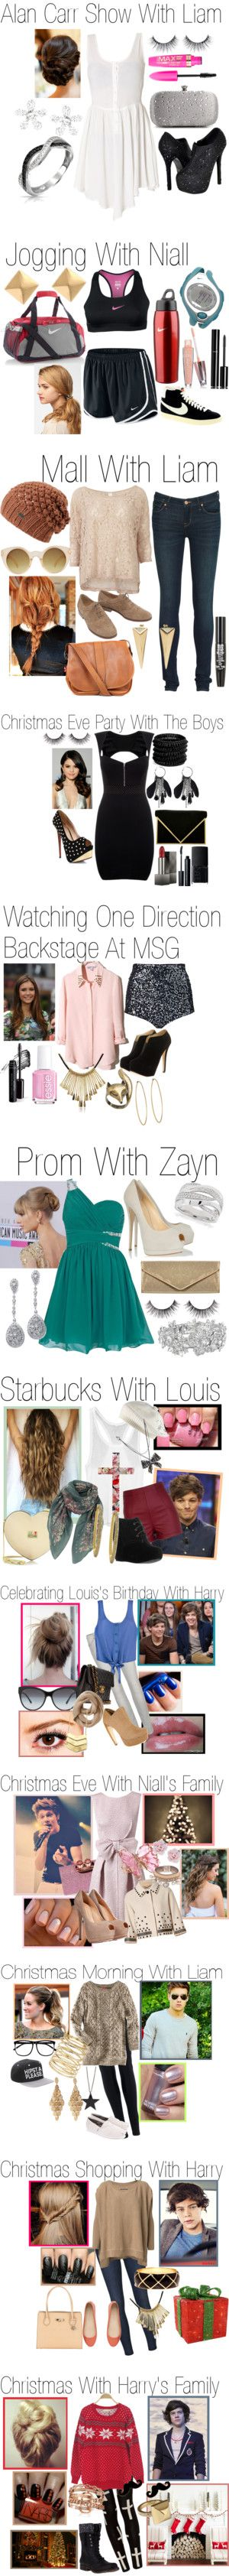 """""""One Direction Outfit"""" by harrystyles2213 ❤ liked on Polyvore"""